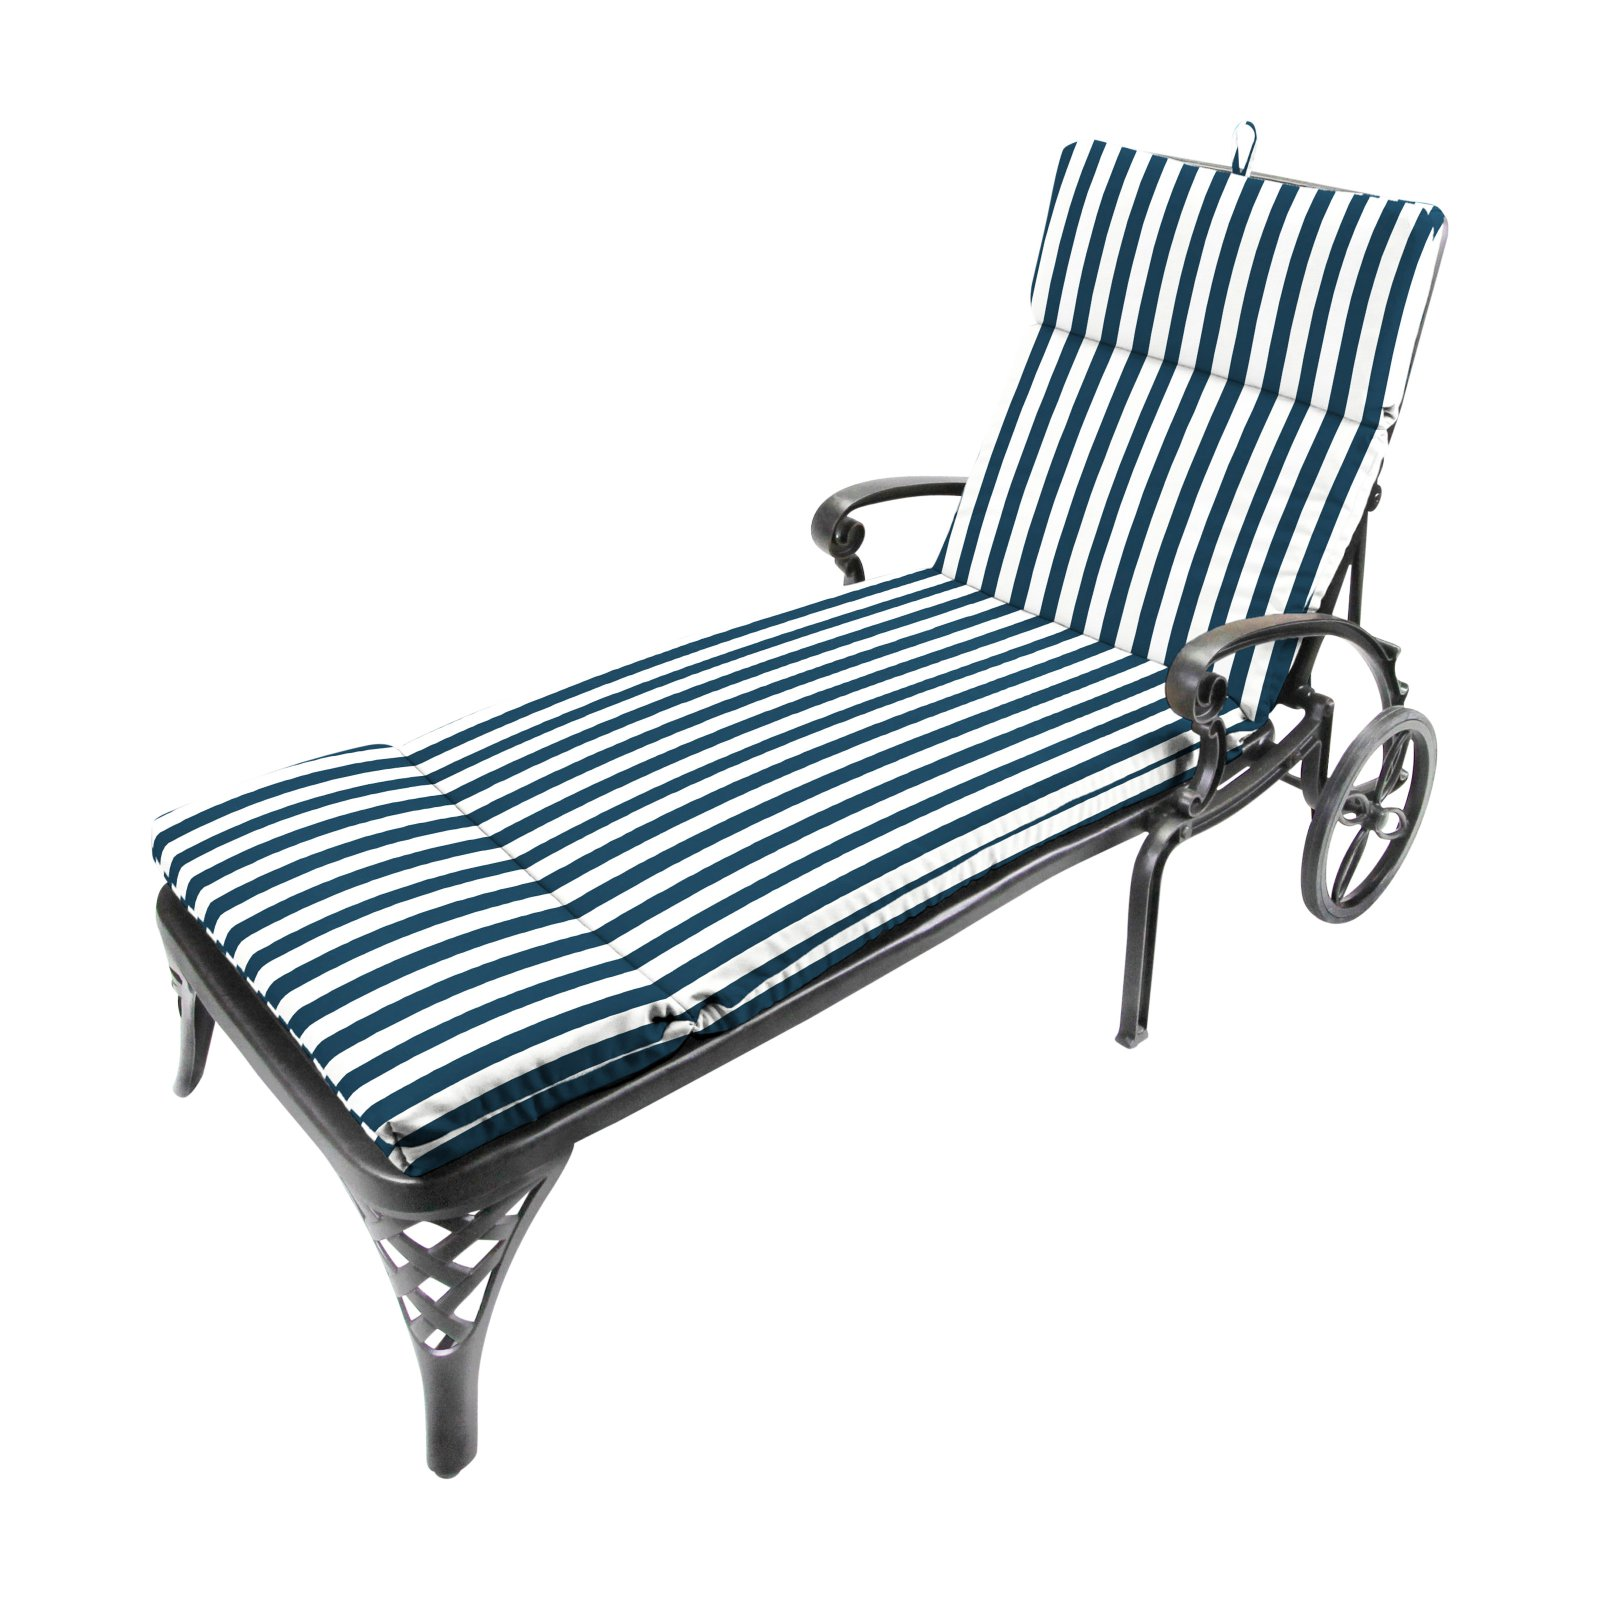 Jordan Manufacturing 72 in. Outdoor Chaise Cushion - Stripe Oxford